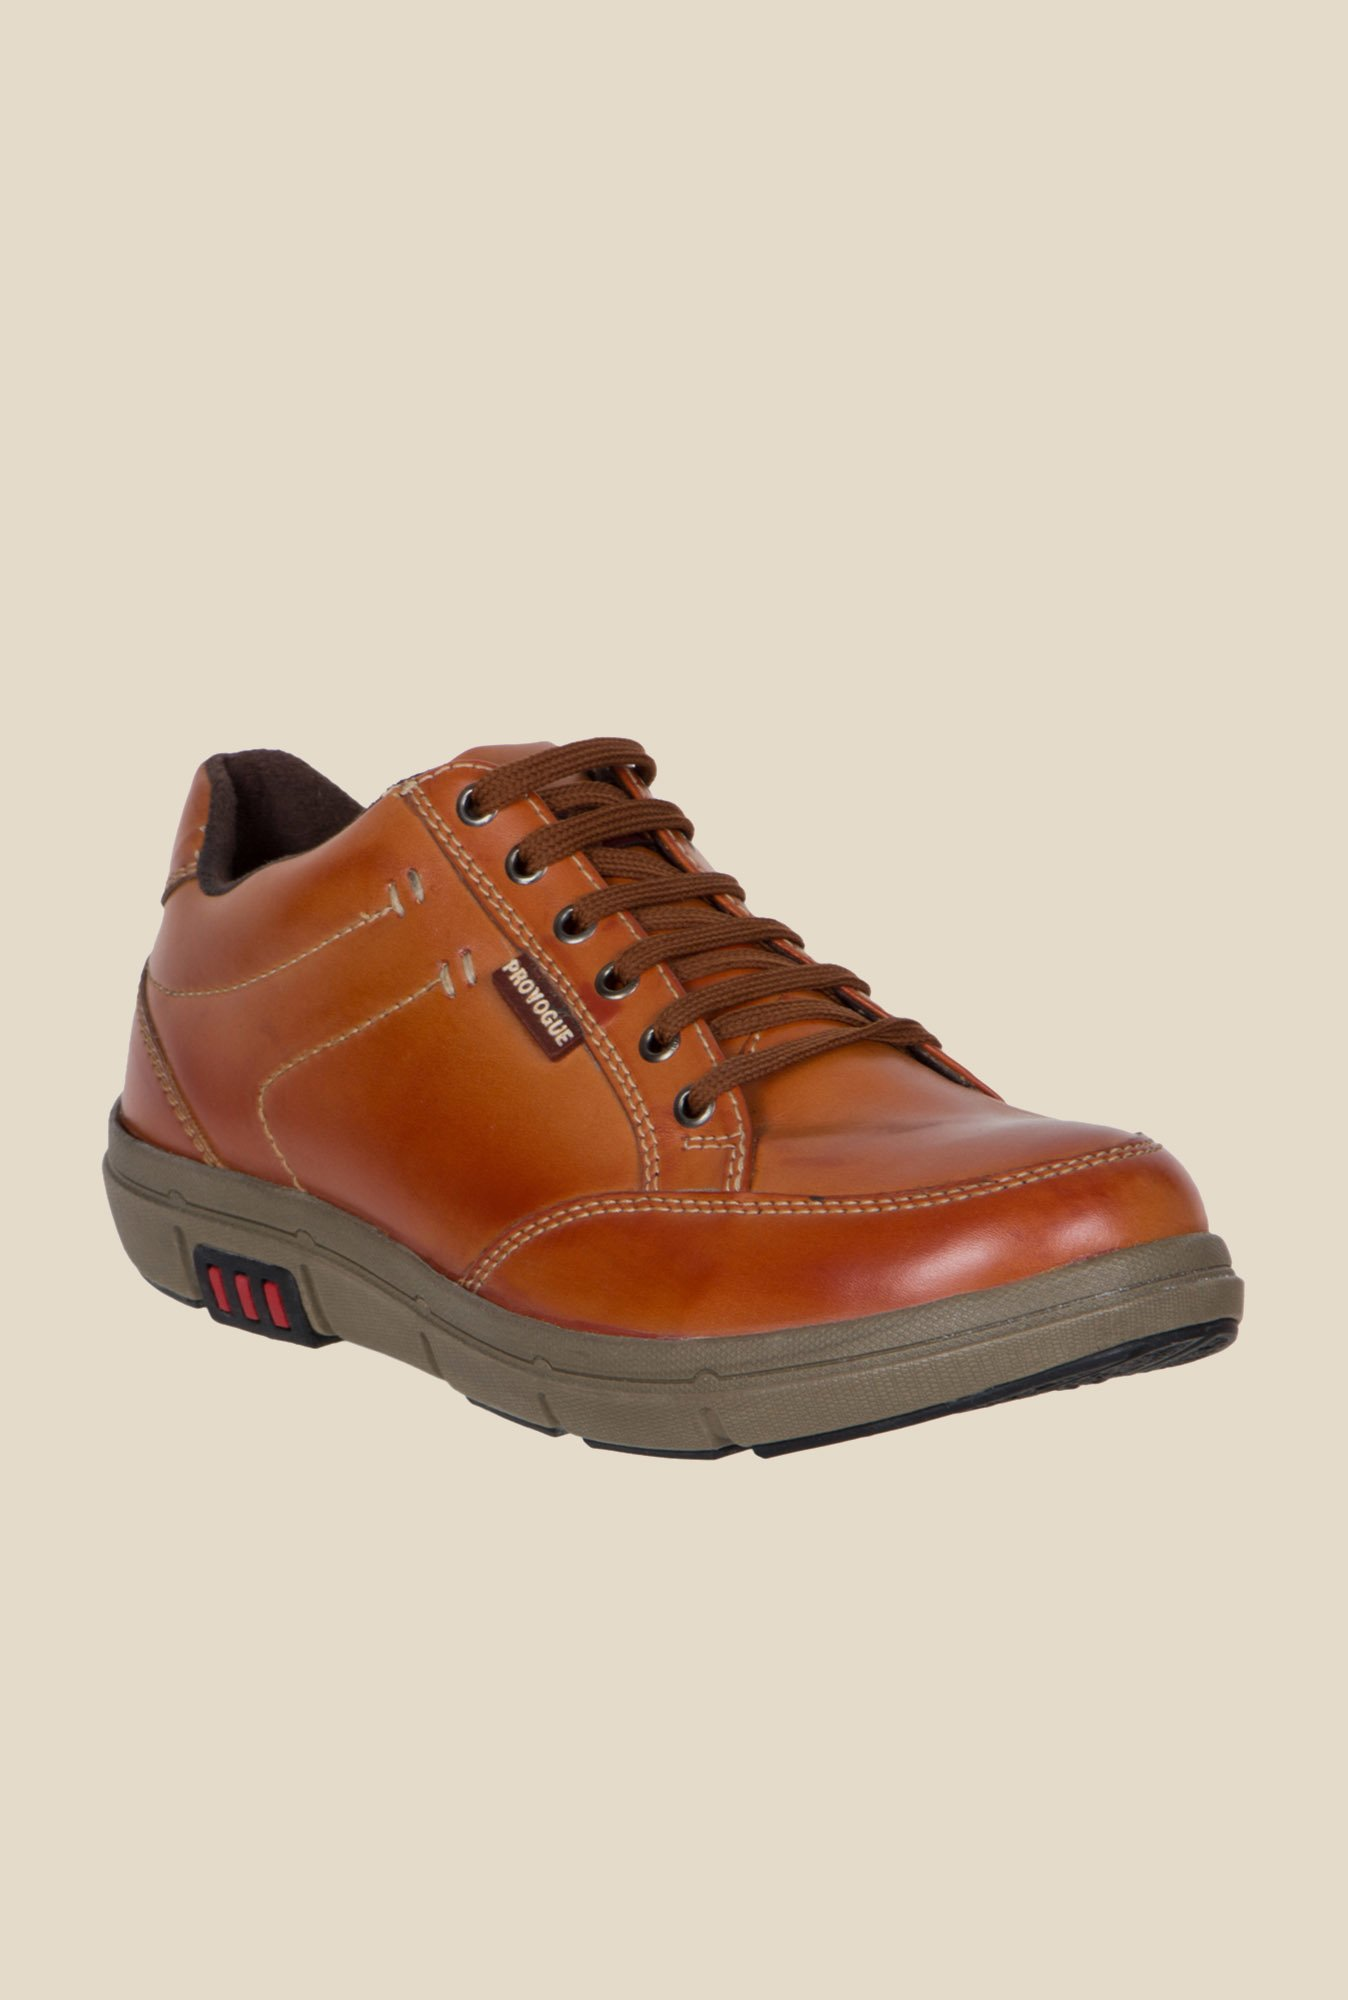 Provogue Tan Casual Shoes